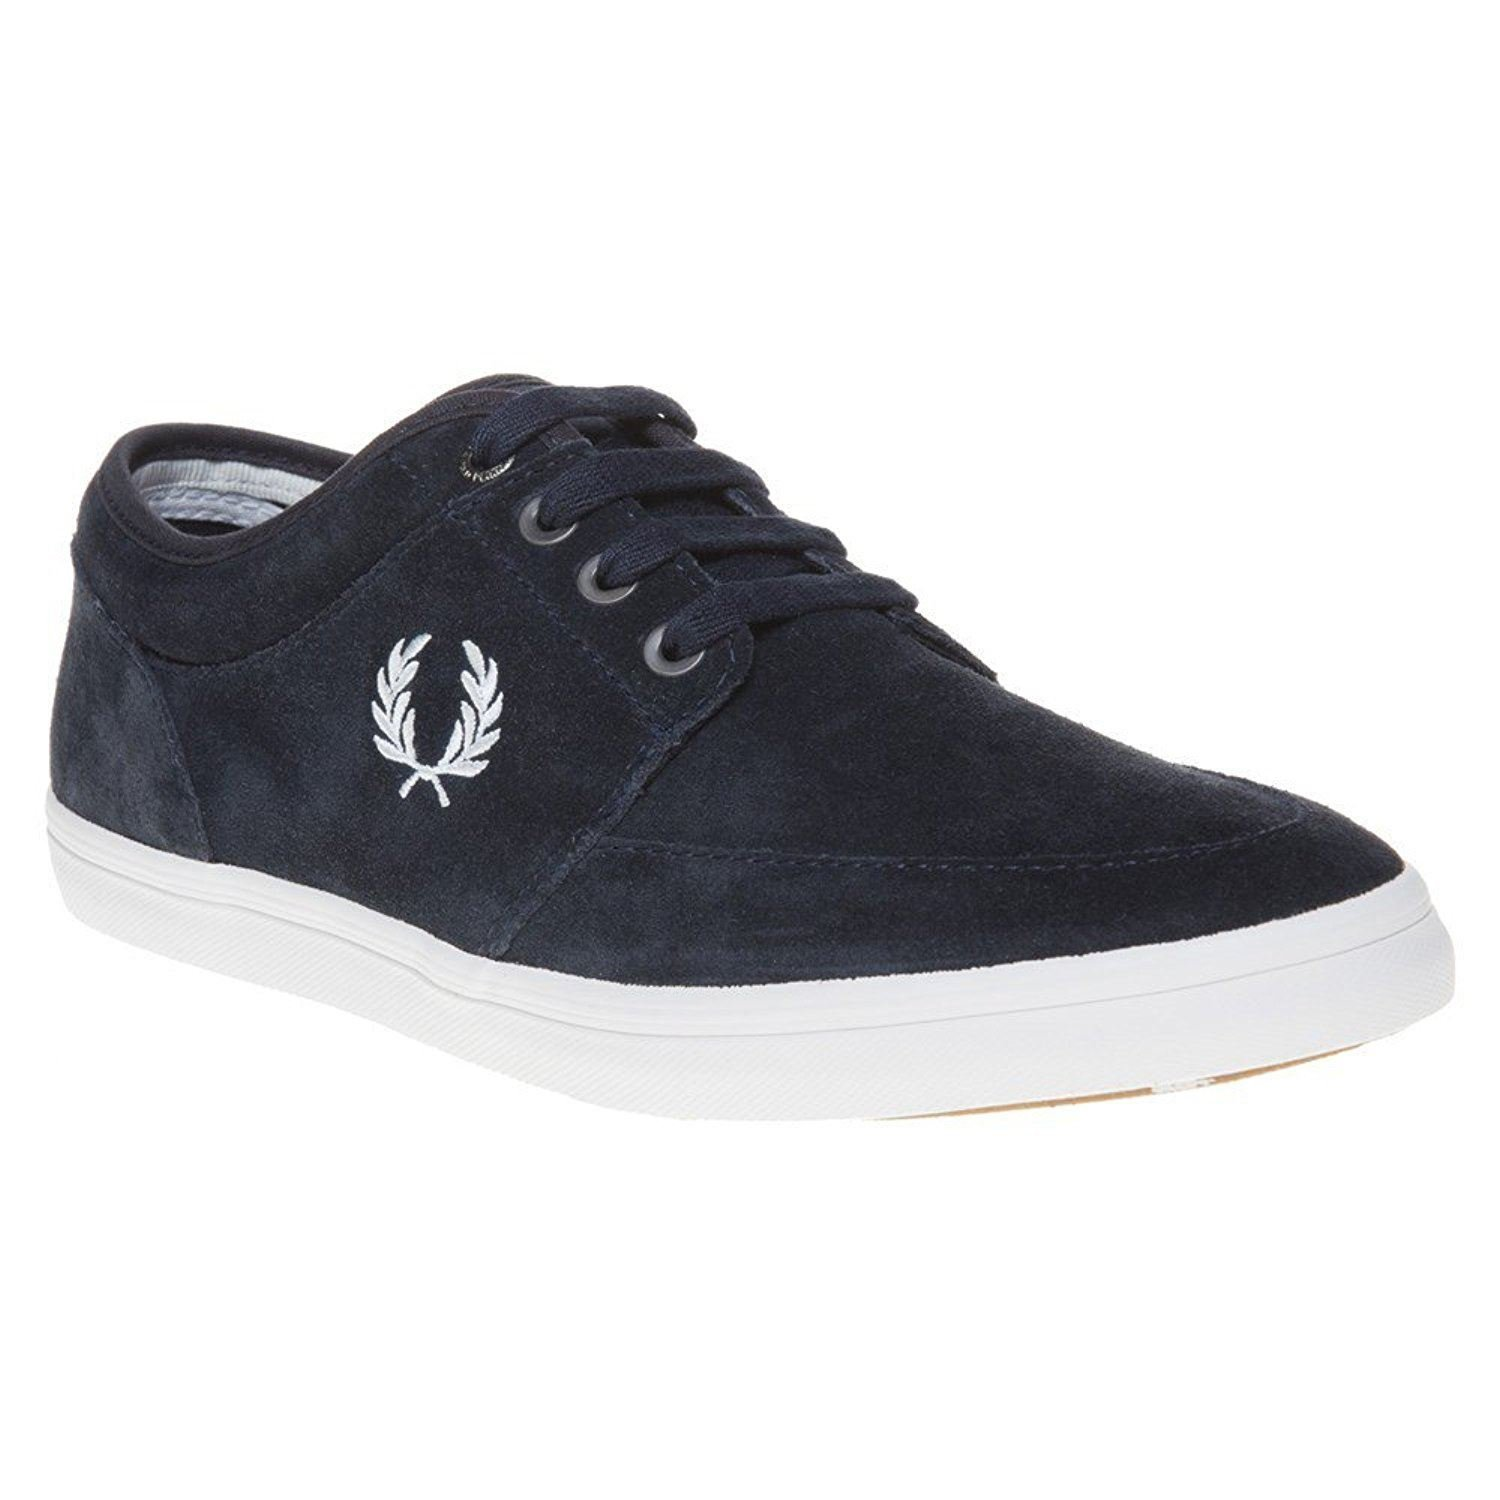 Frot Suede Perry Stratford Suede Frot Navy B1168608, Turnschuhe 57c6bb